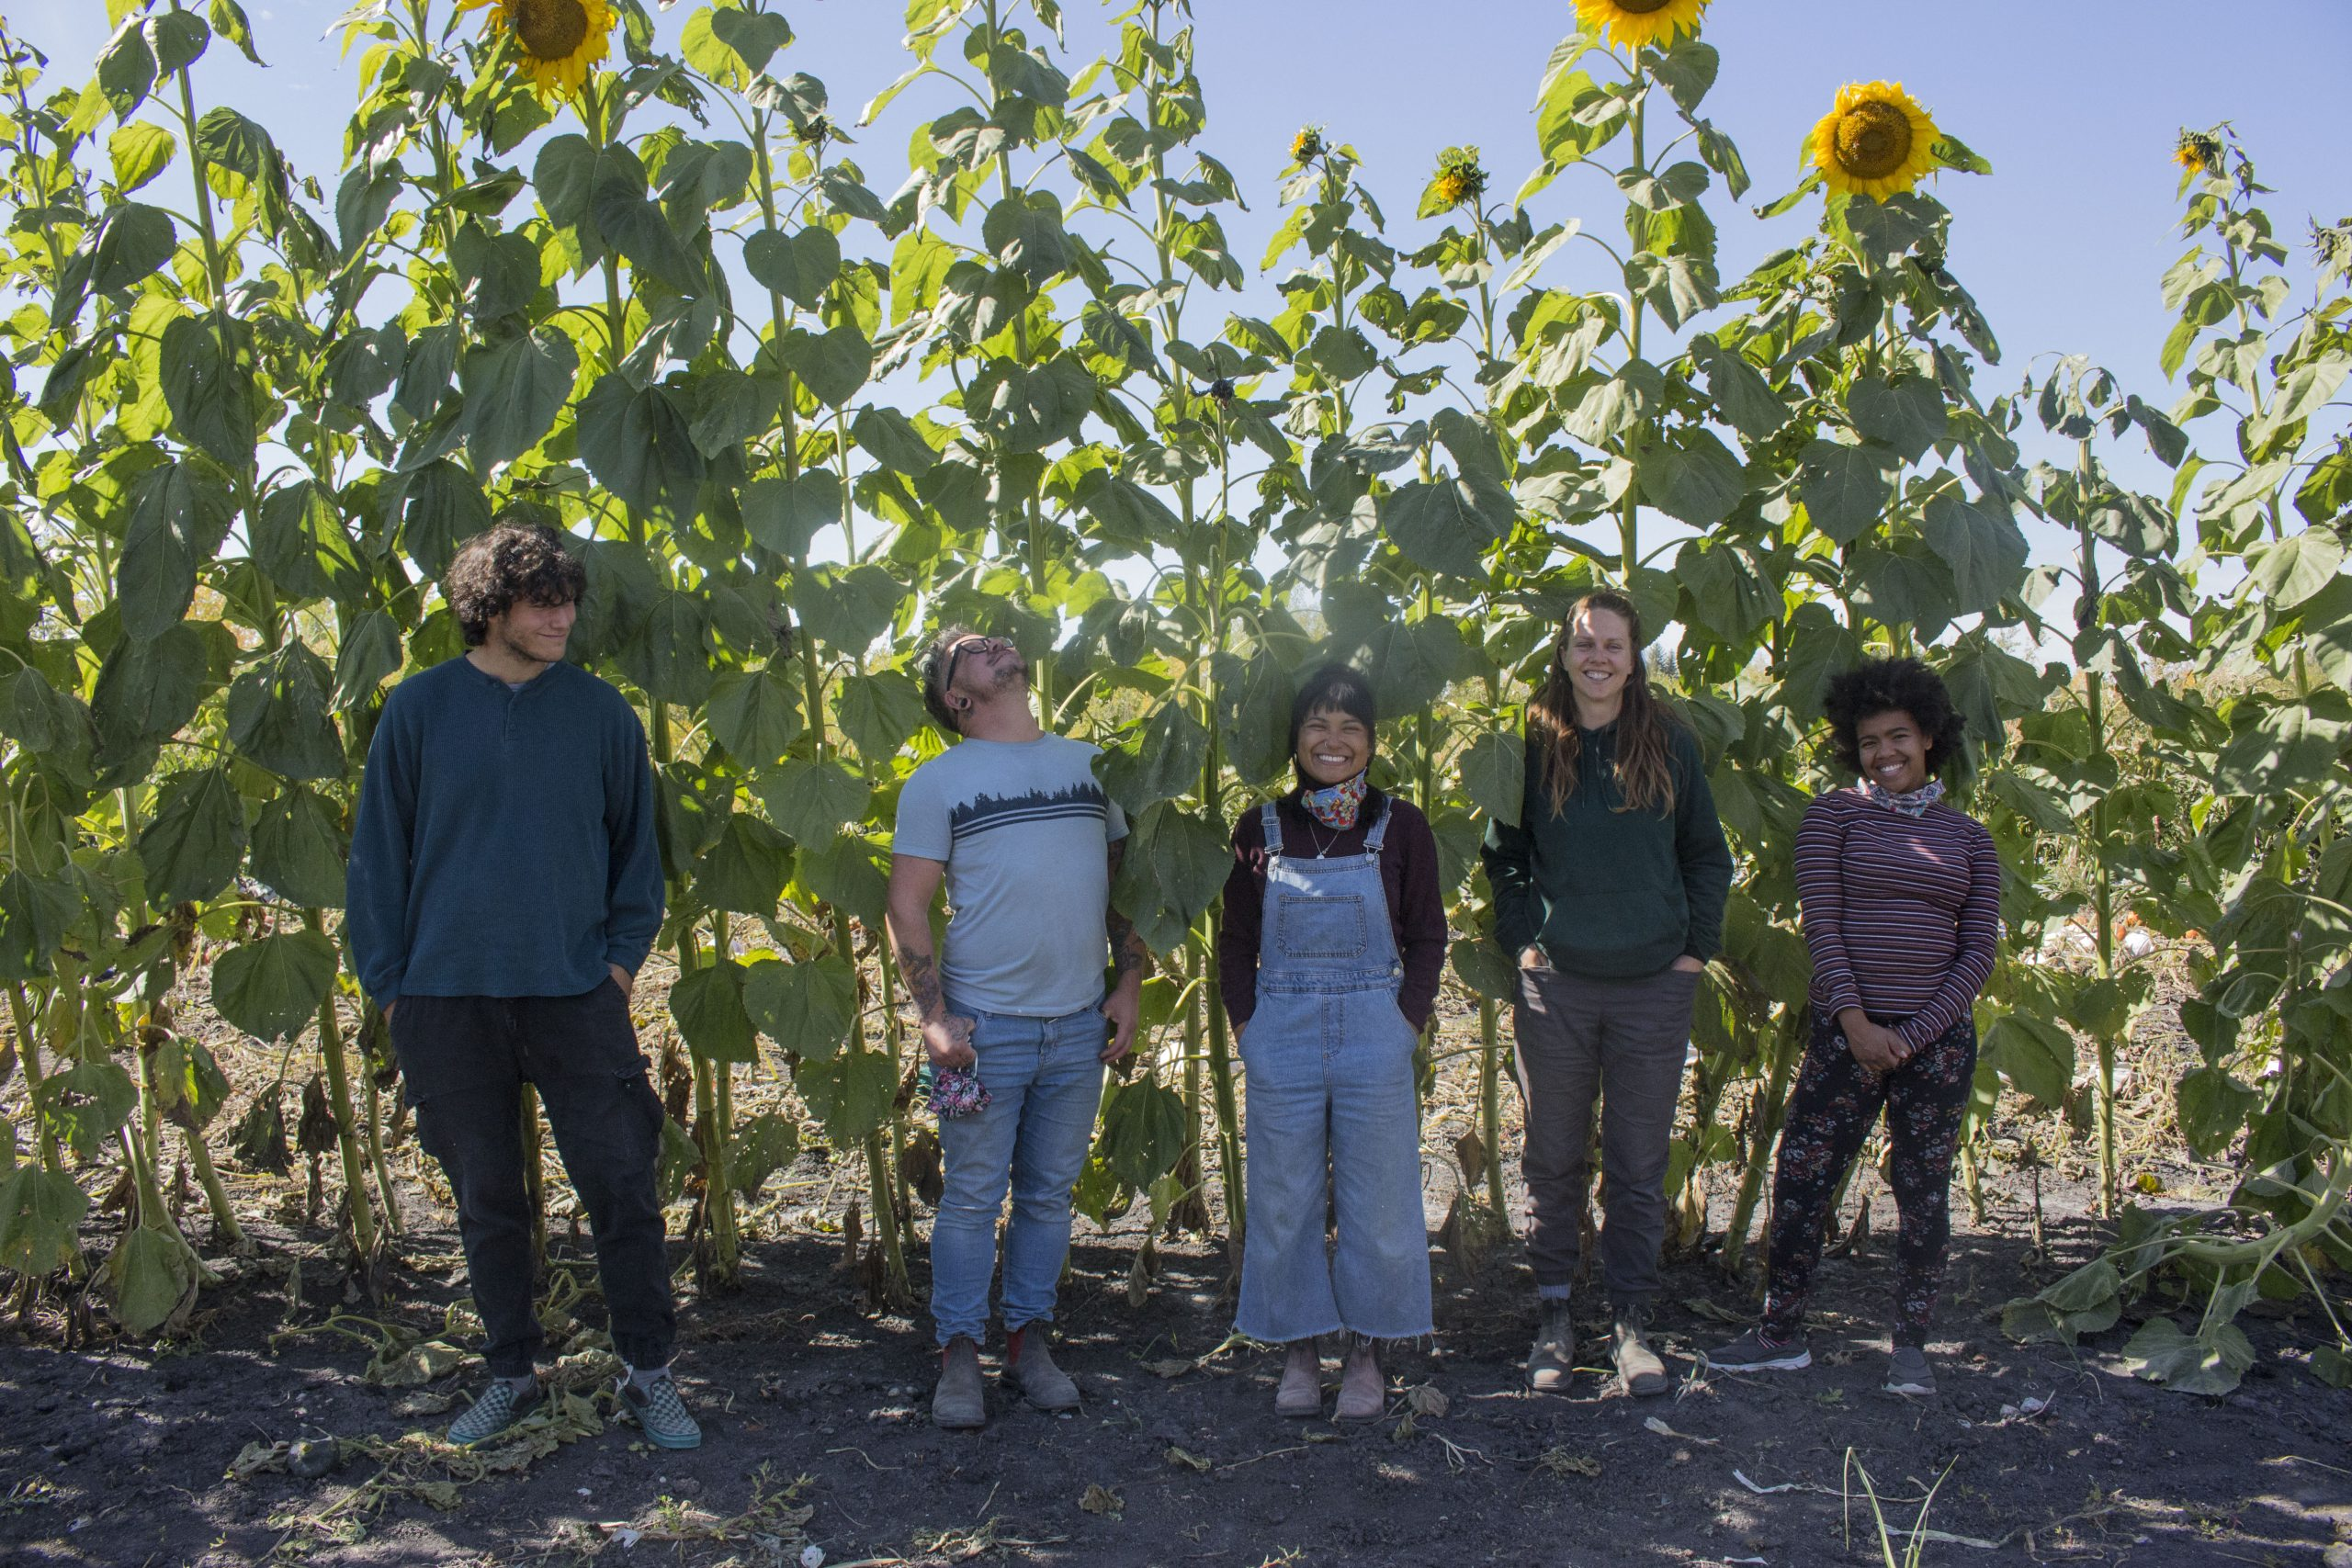 Five FortWhyte Farms staff members stand side by side in front of a row of sunflowers.